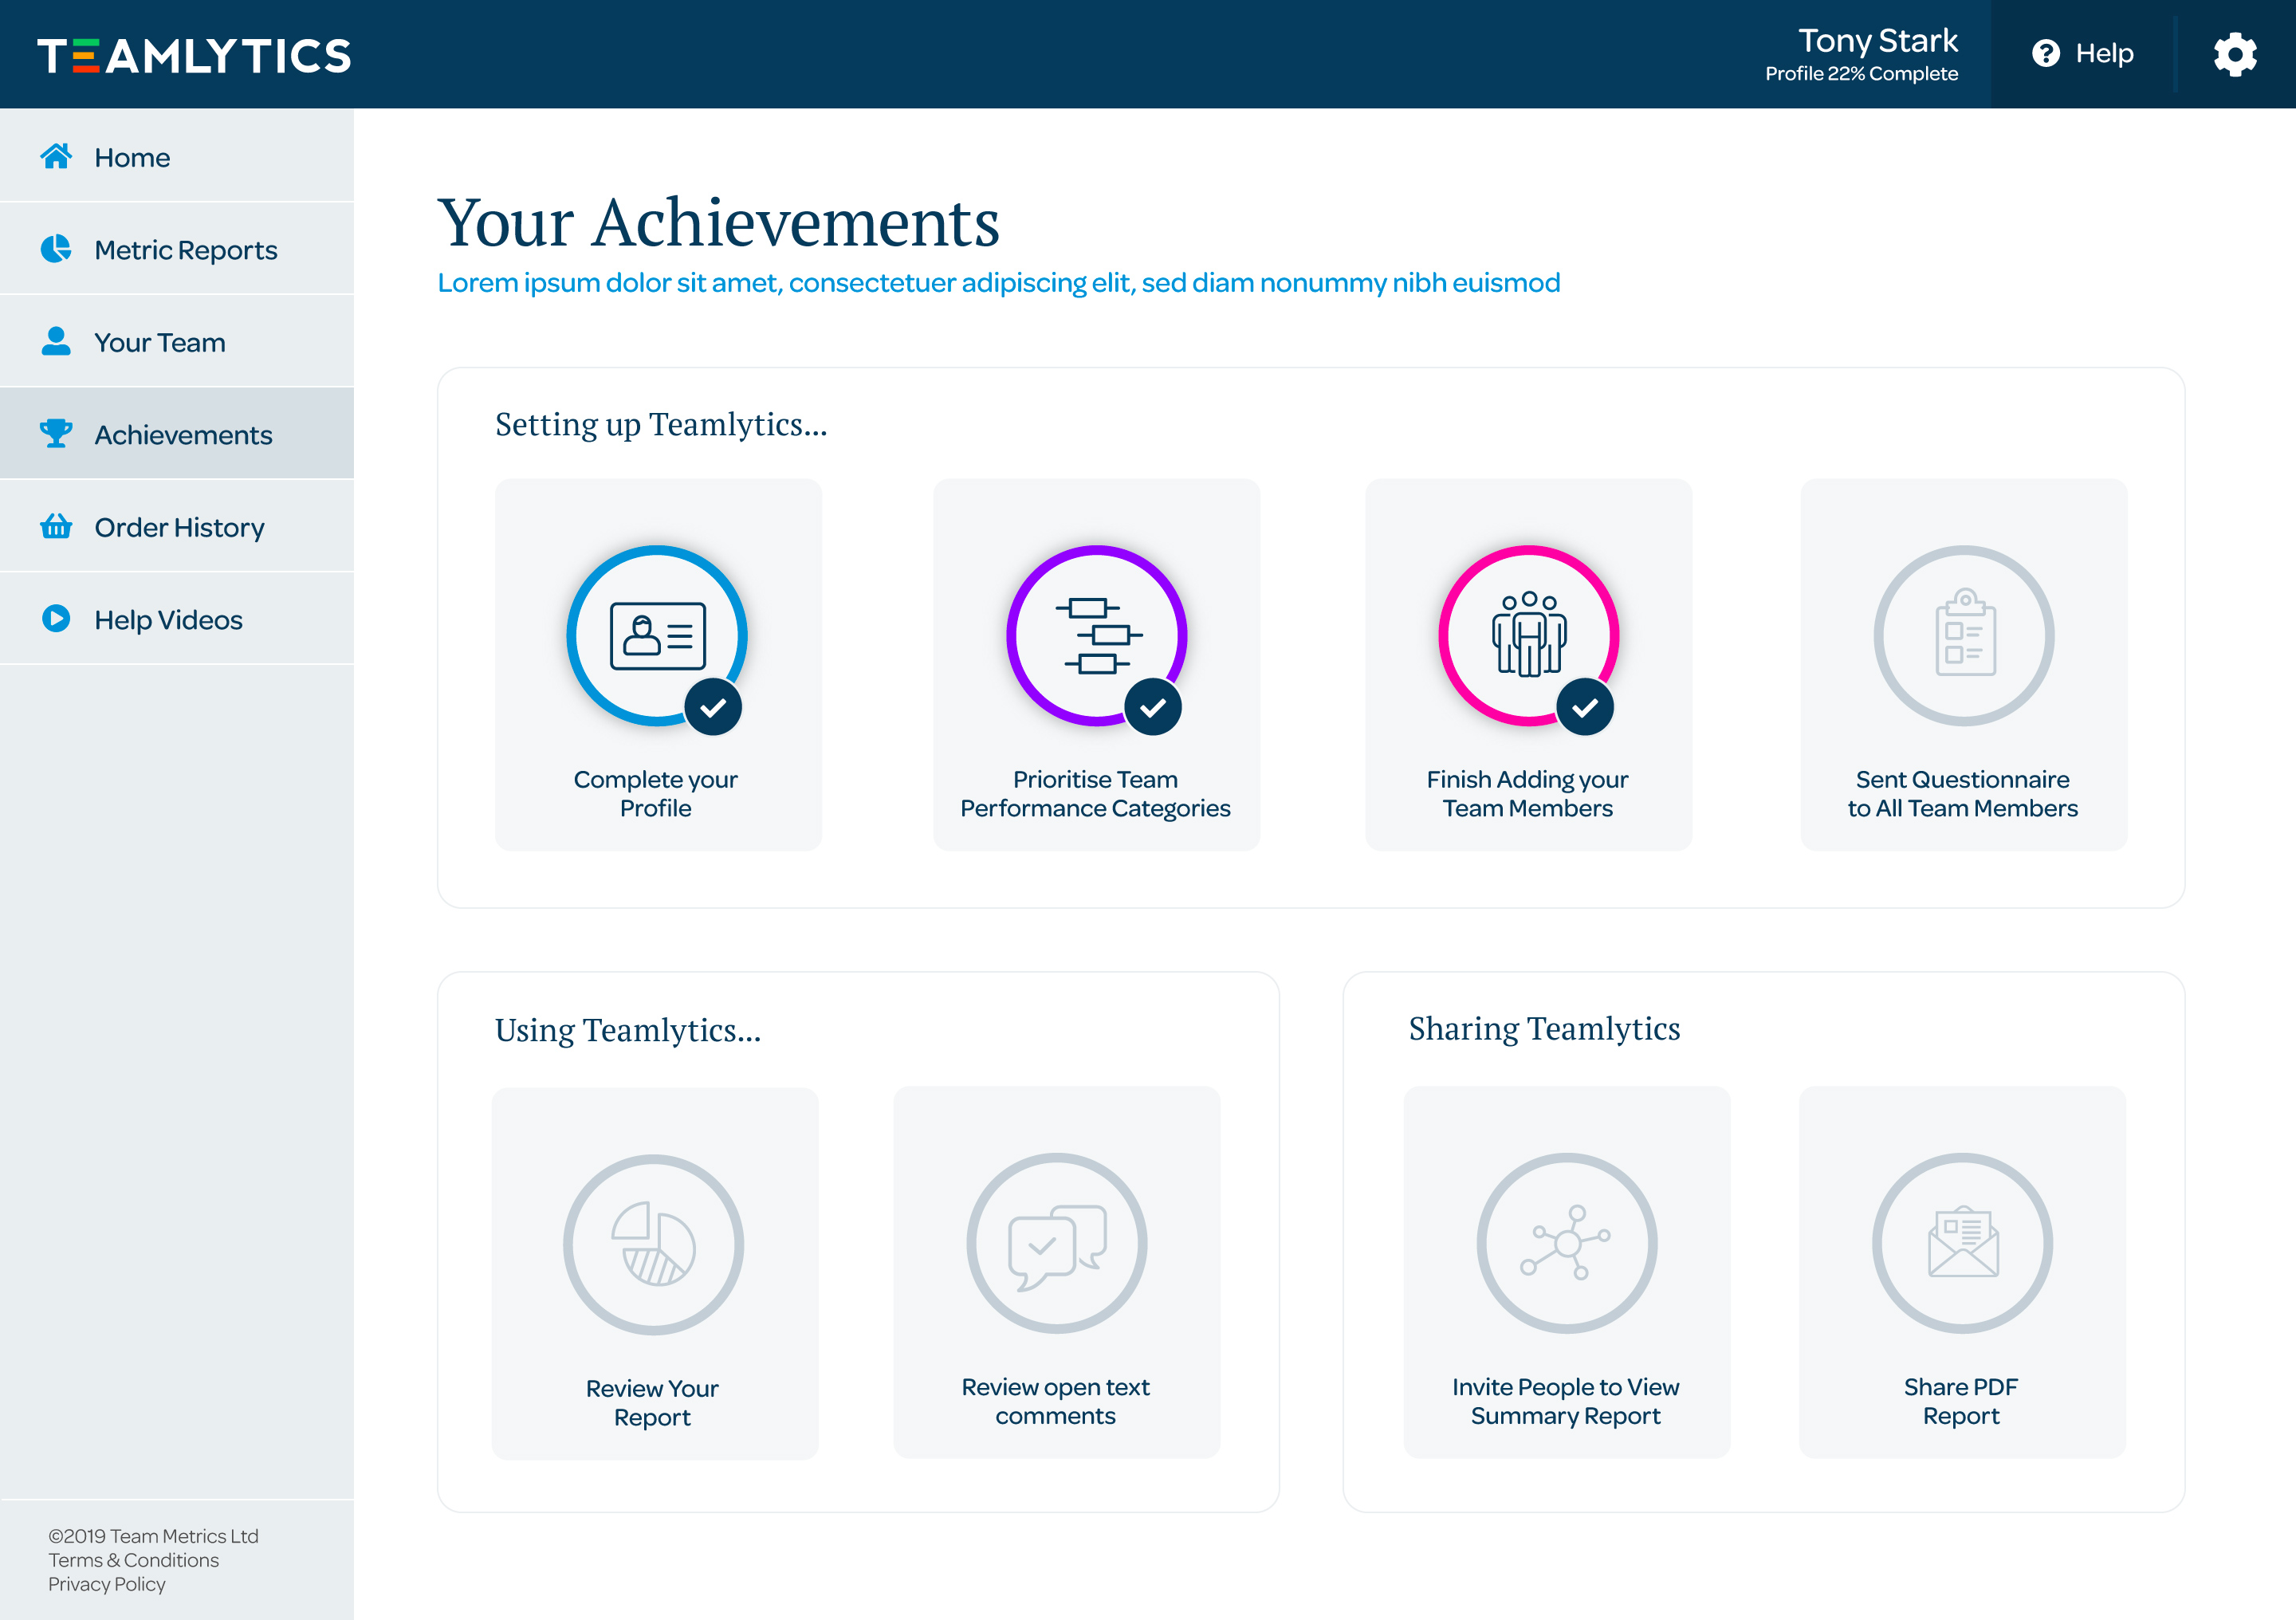 Achievements add a gamification layer, enticing the user to complete required steps